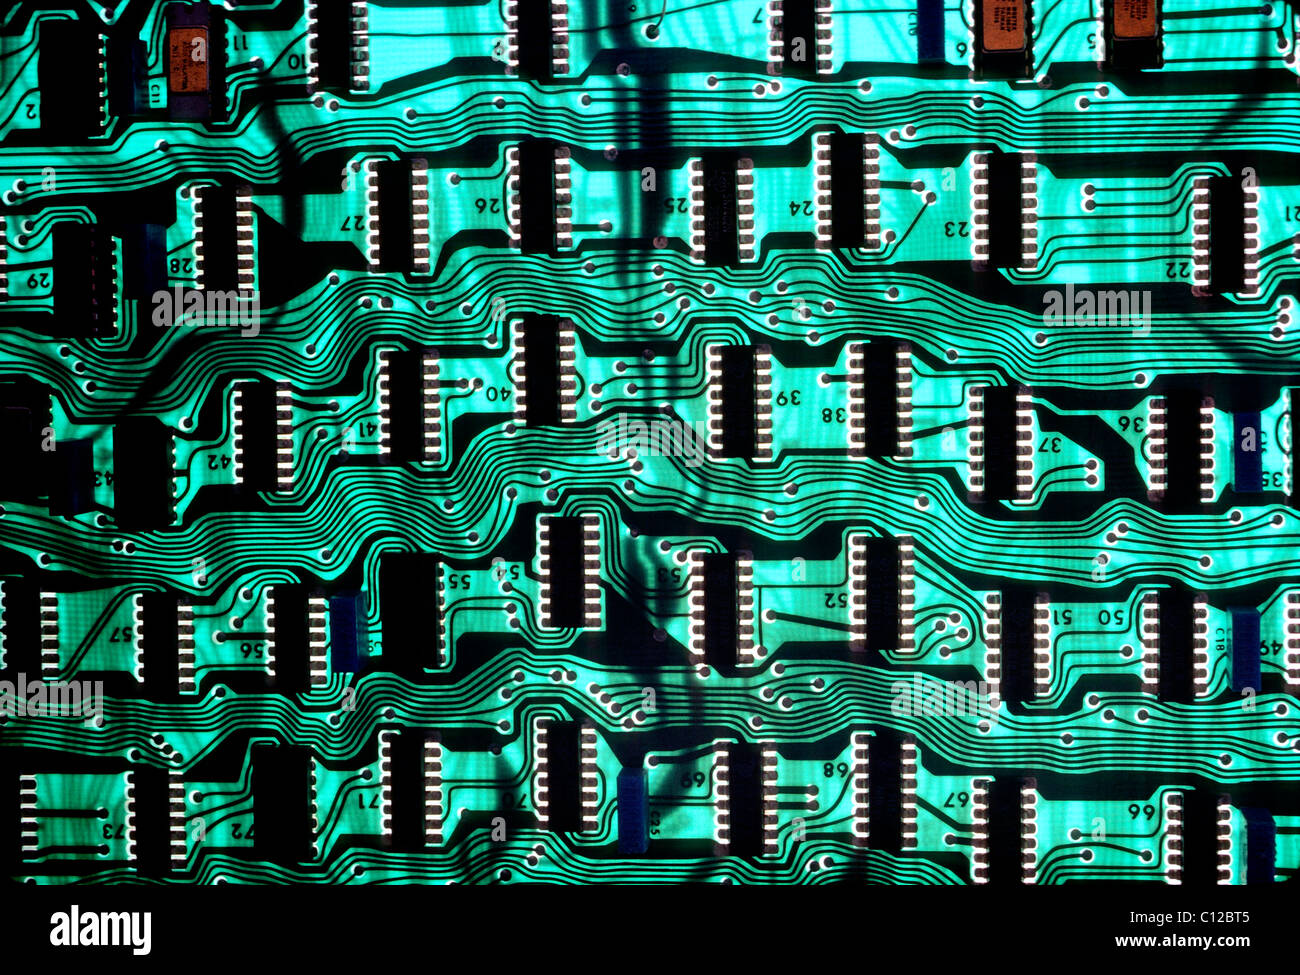 Close-up of a computer circuit board - Stock Image